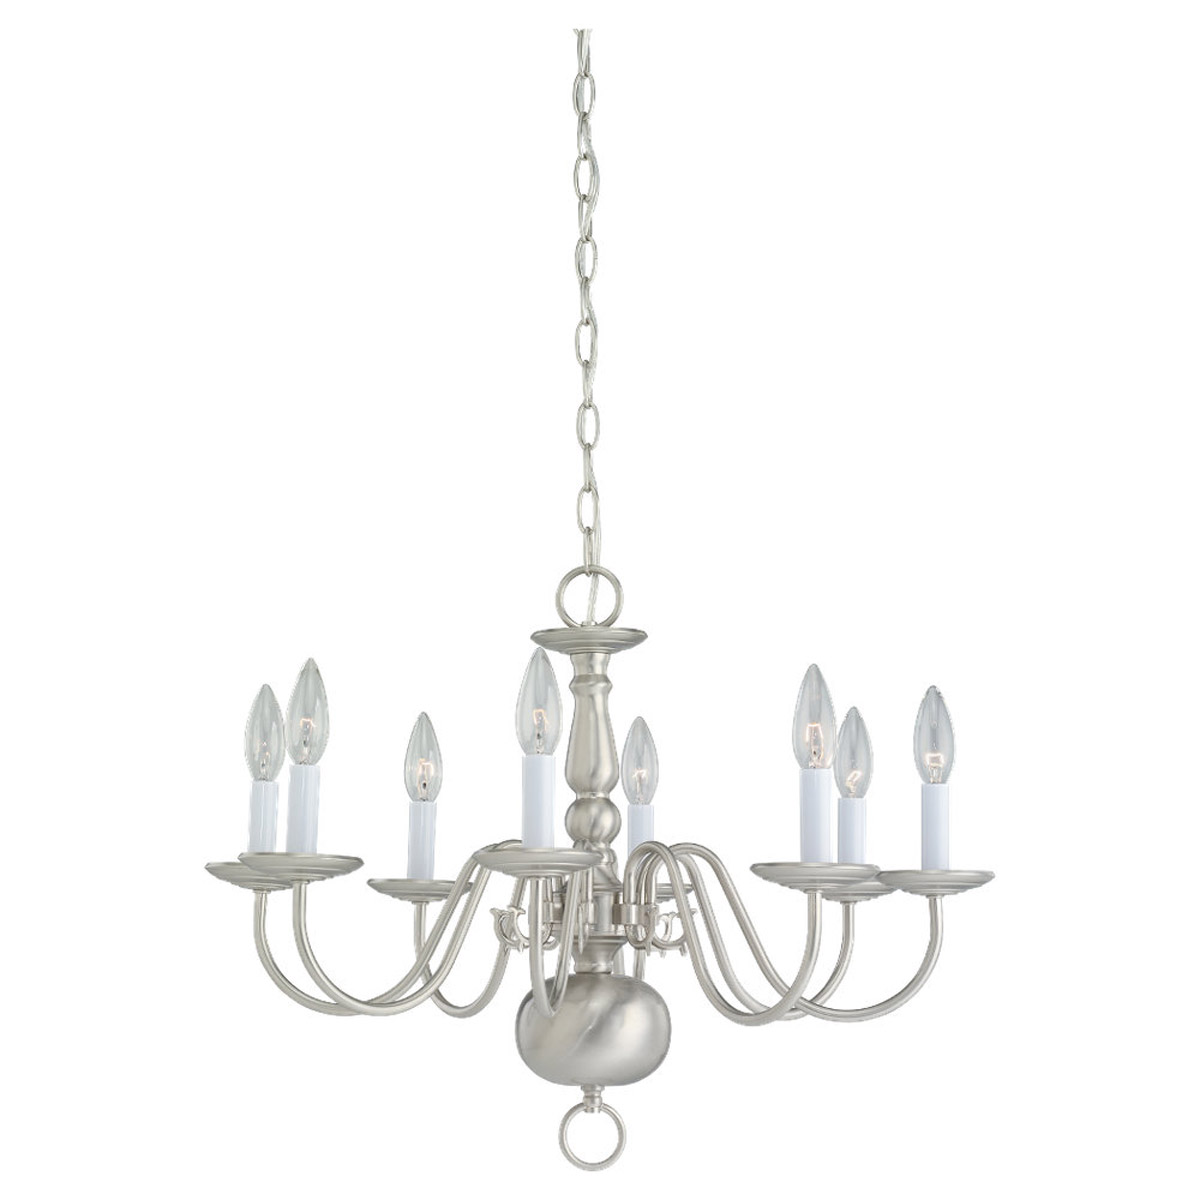 Sea Gull Lighting Traditional 8 Light Chandelier in Brushed Nickel 3412-962 photo